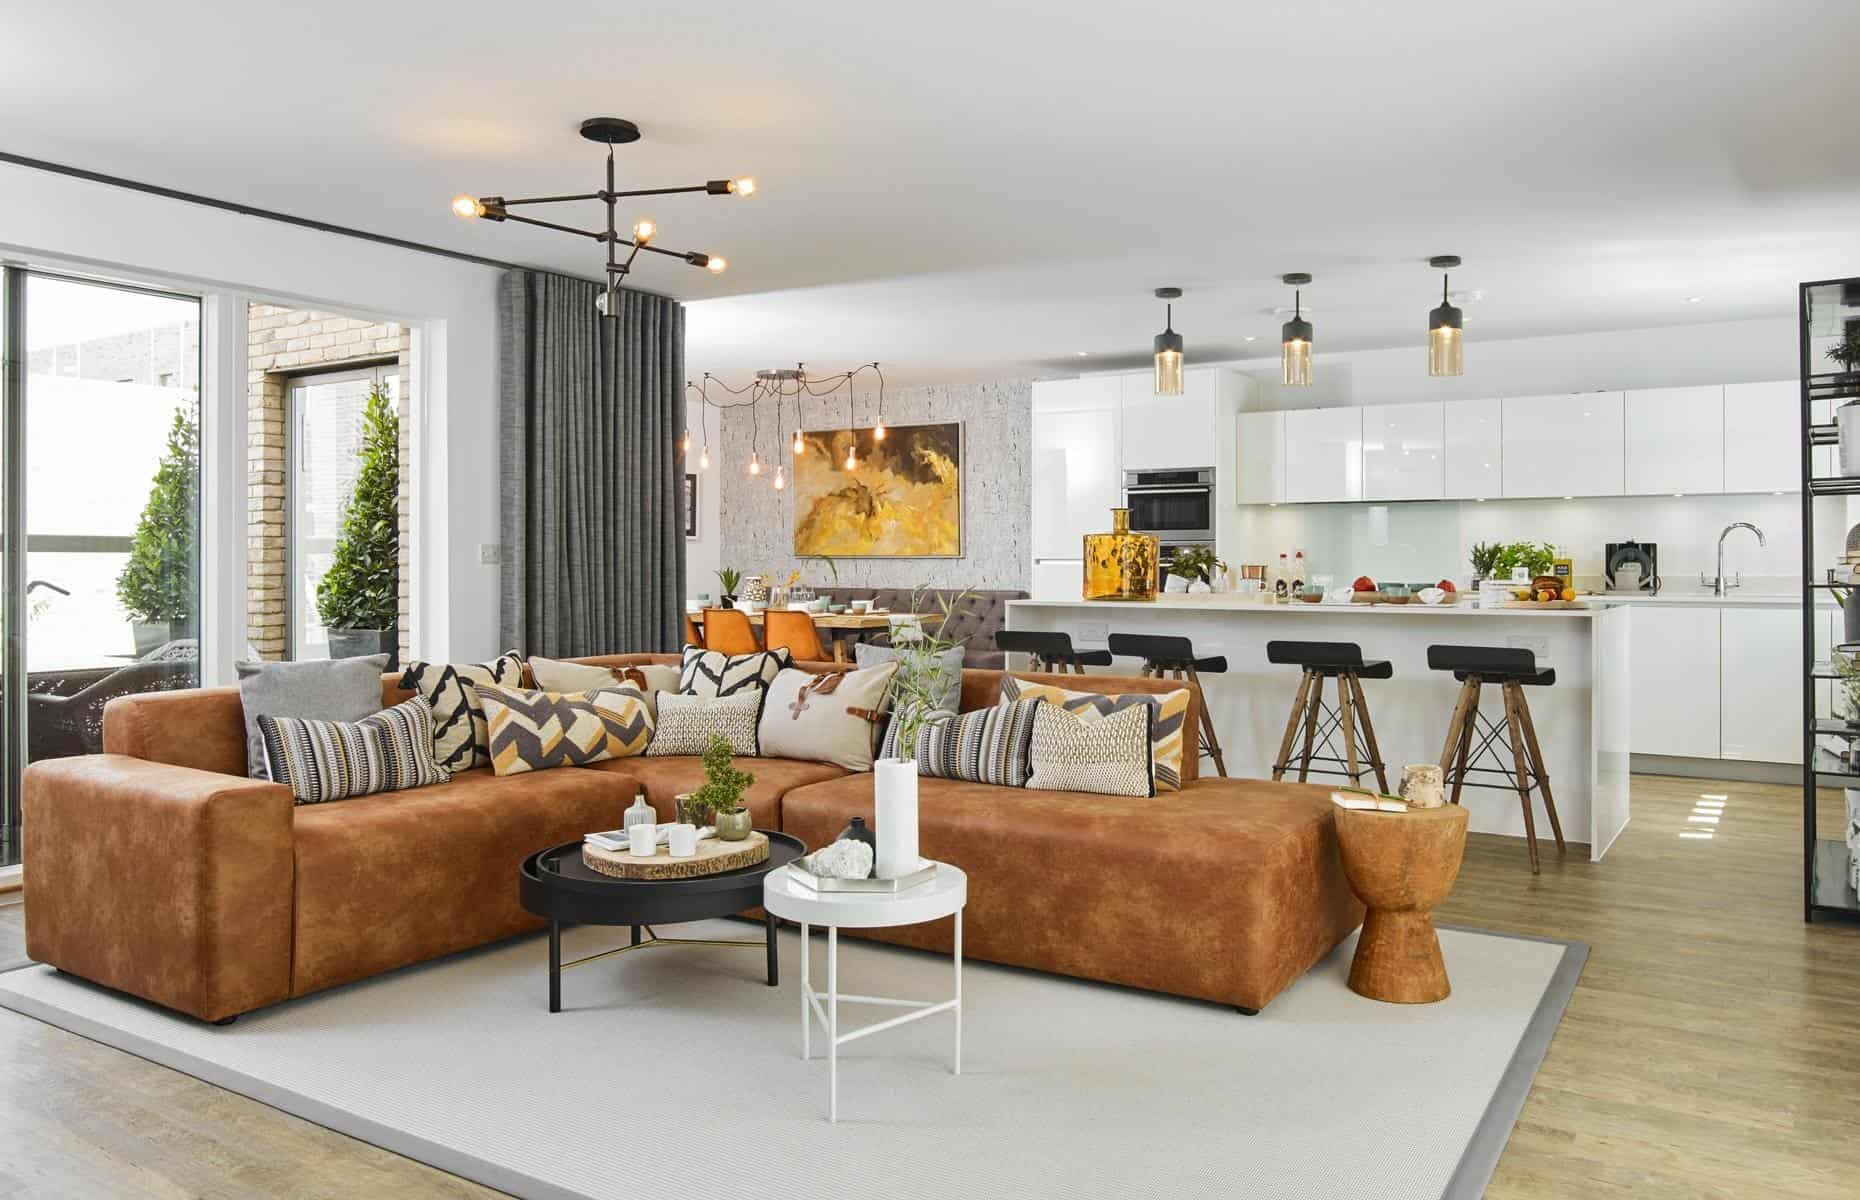 Designing a 'kids welcome' home